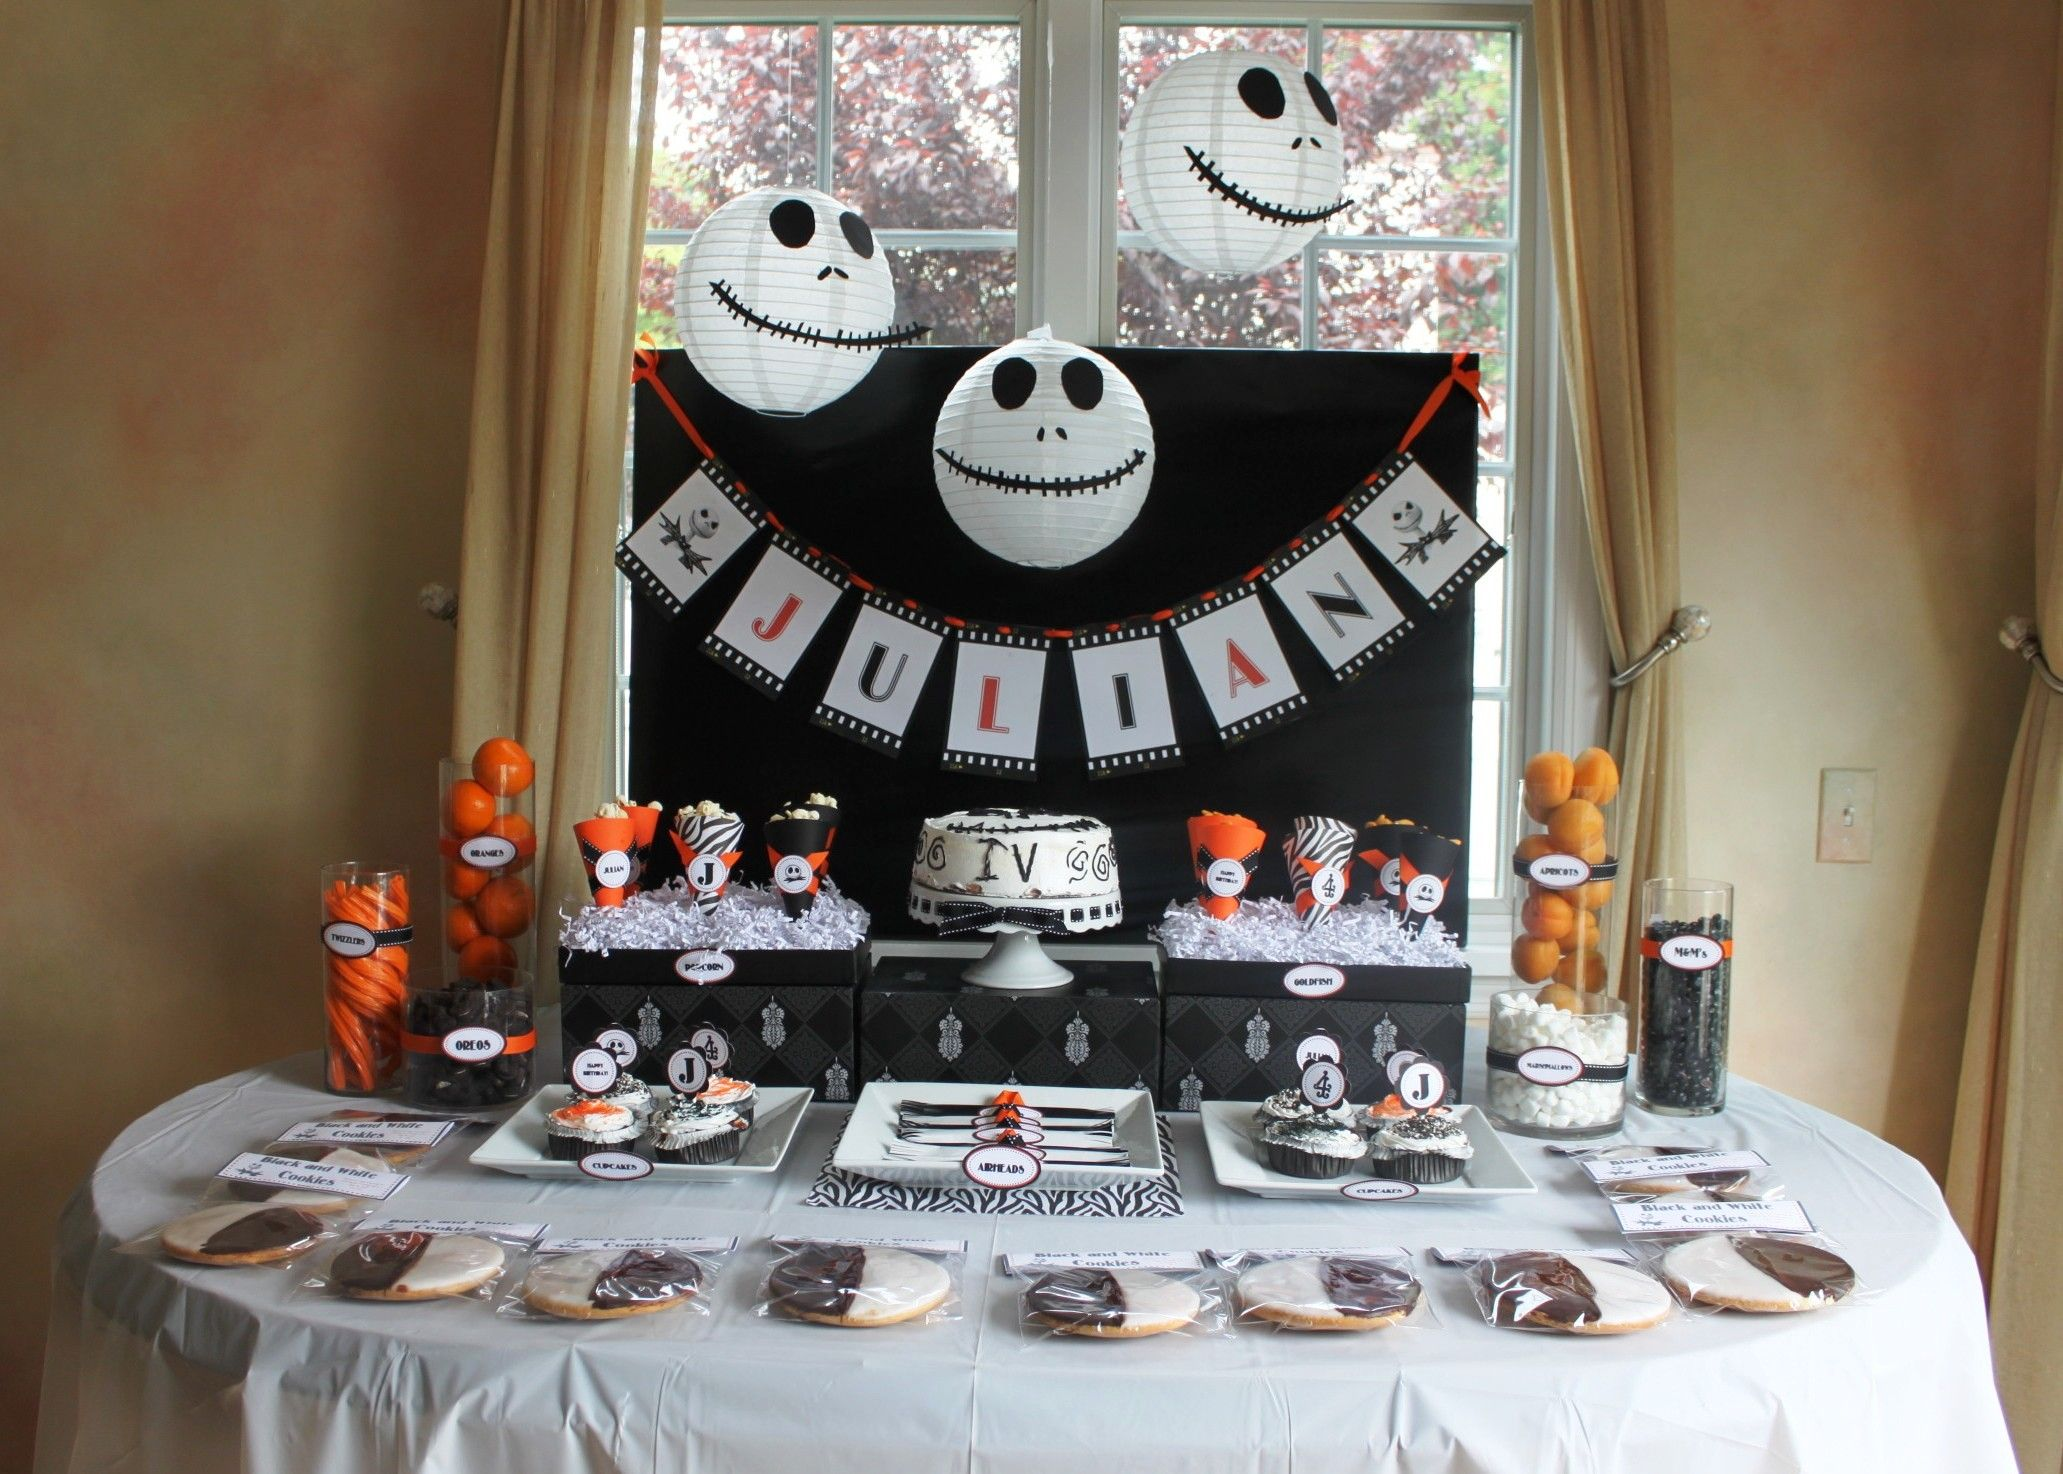 A Nightmare Before Christmas Party | Party Ideas | Pinterest ...